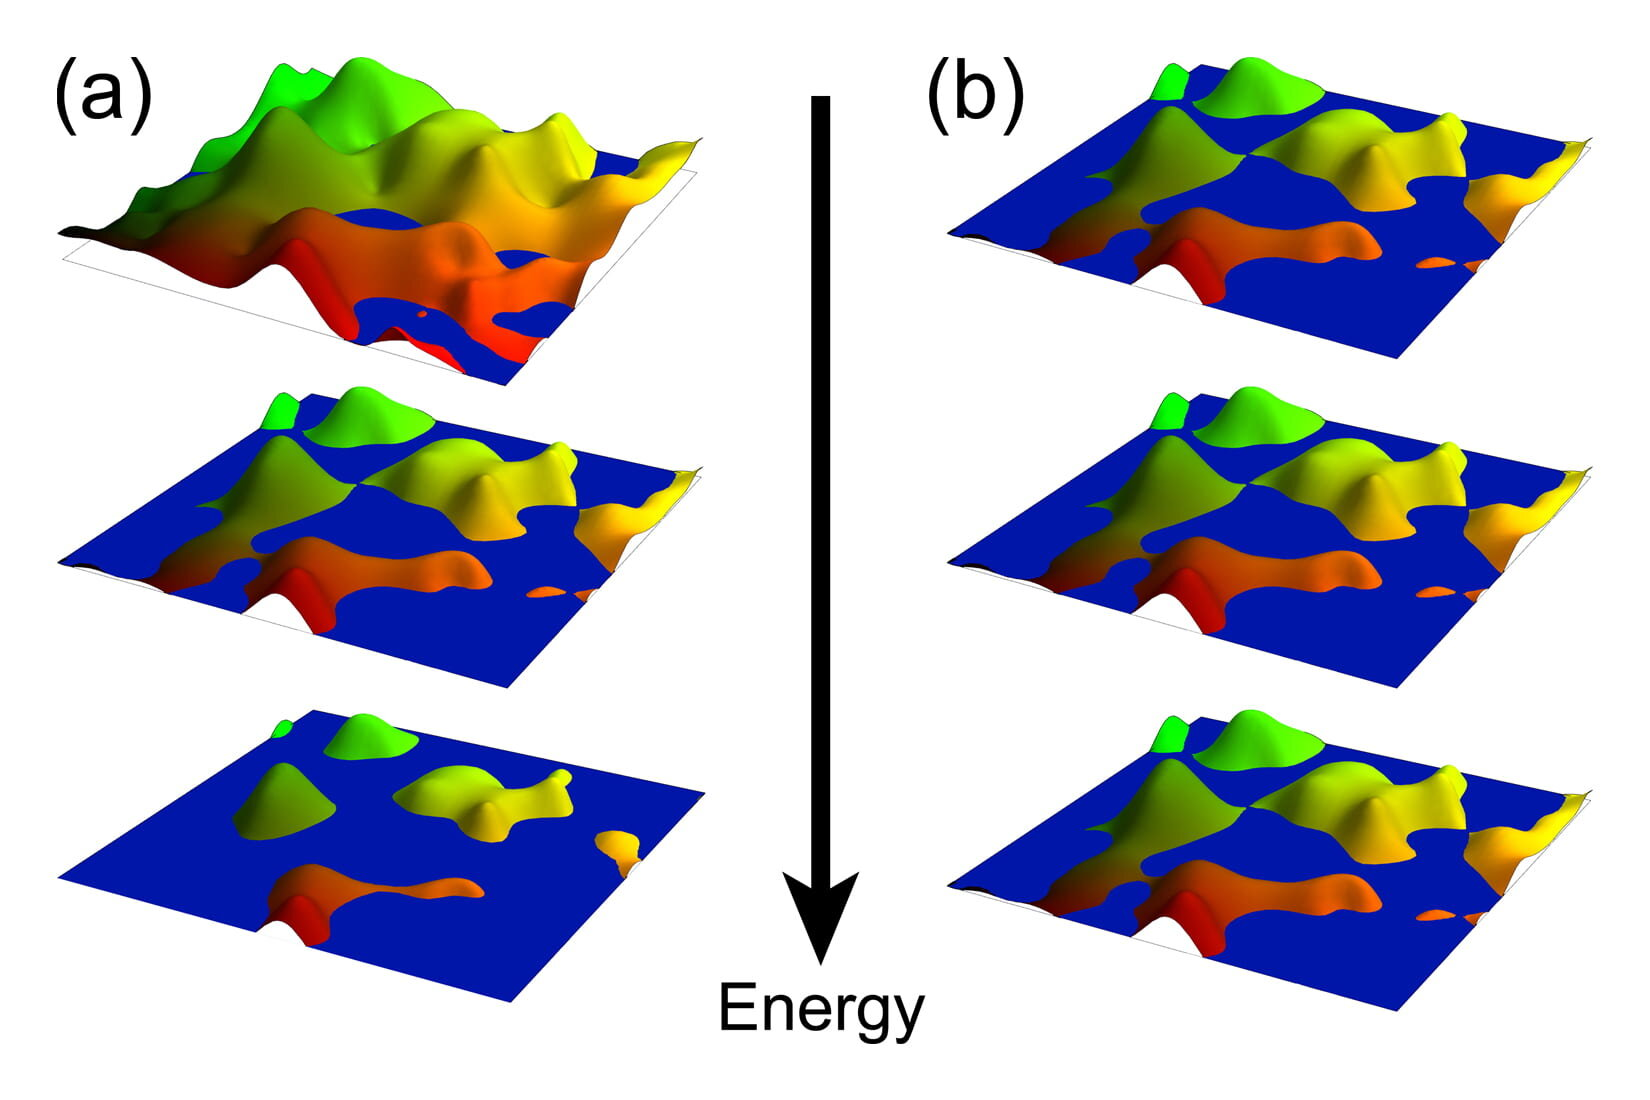 """The rugged landscapes in these illustrations depict the electric potential on the surface of 2D materials that exhibit the quantum Hall effect. The level of ruggedness corresponds to impurities in the system, and the water level represents the """"Fermi energy,"""" or filling level of electrons. In the quantum Hall effect (left), the percolation threshold (middle) is a fine-tuned energy state that marks the transition to topological order. New research by physicists at Rice University, the University of California Berkeley and the Karlsruhe Institute of Technology has found """"stacks"""" of this special 2D state that protect patterns of quantum entanglement (right) throughout the surface energy spectrum of 3D topological materials. Credit: M. Foster/Rice University"""